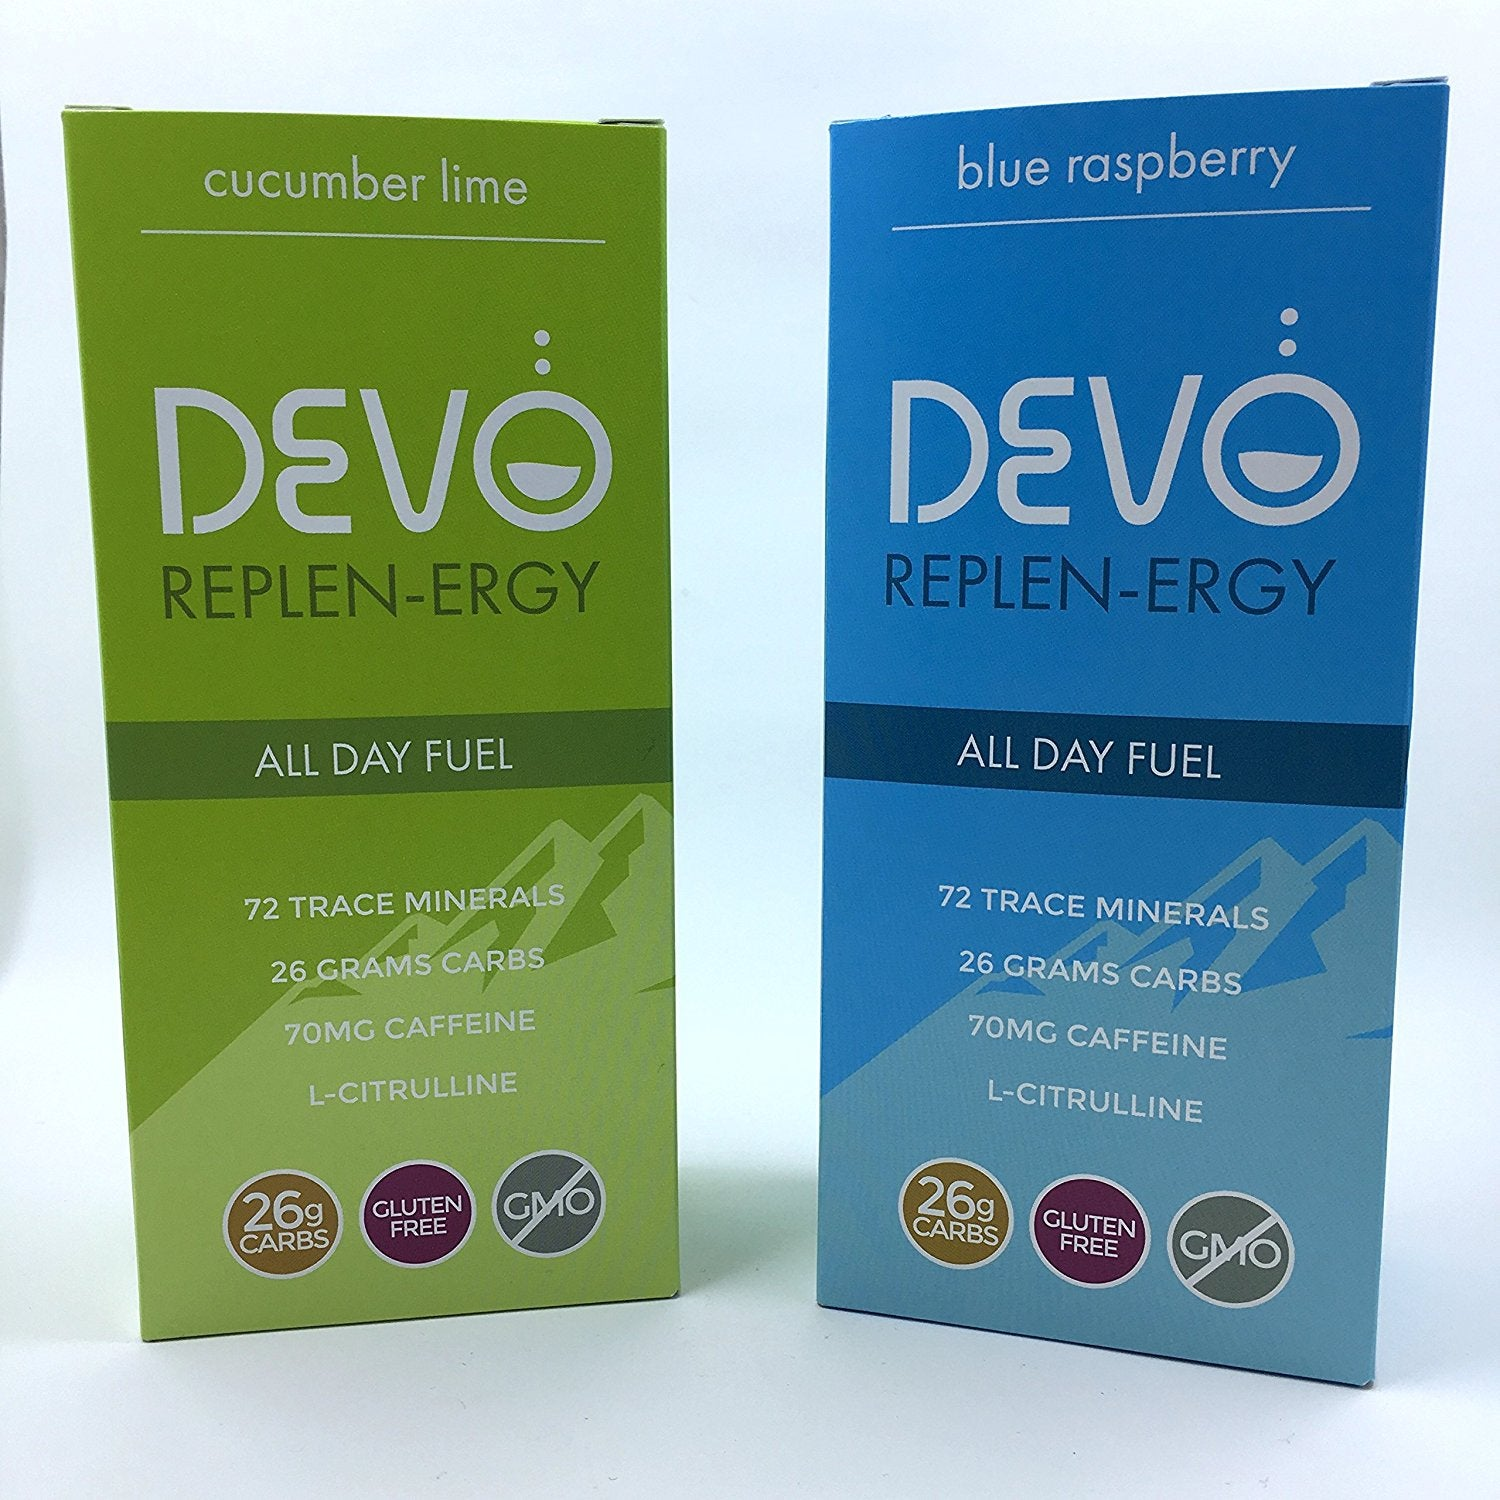 Combo Pack: Devo Replen-ergy : Blue Raspberry & Cucumber Lime - 7 single servings per box packets- energy - gluten free - no GMO - vegan - all natural